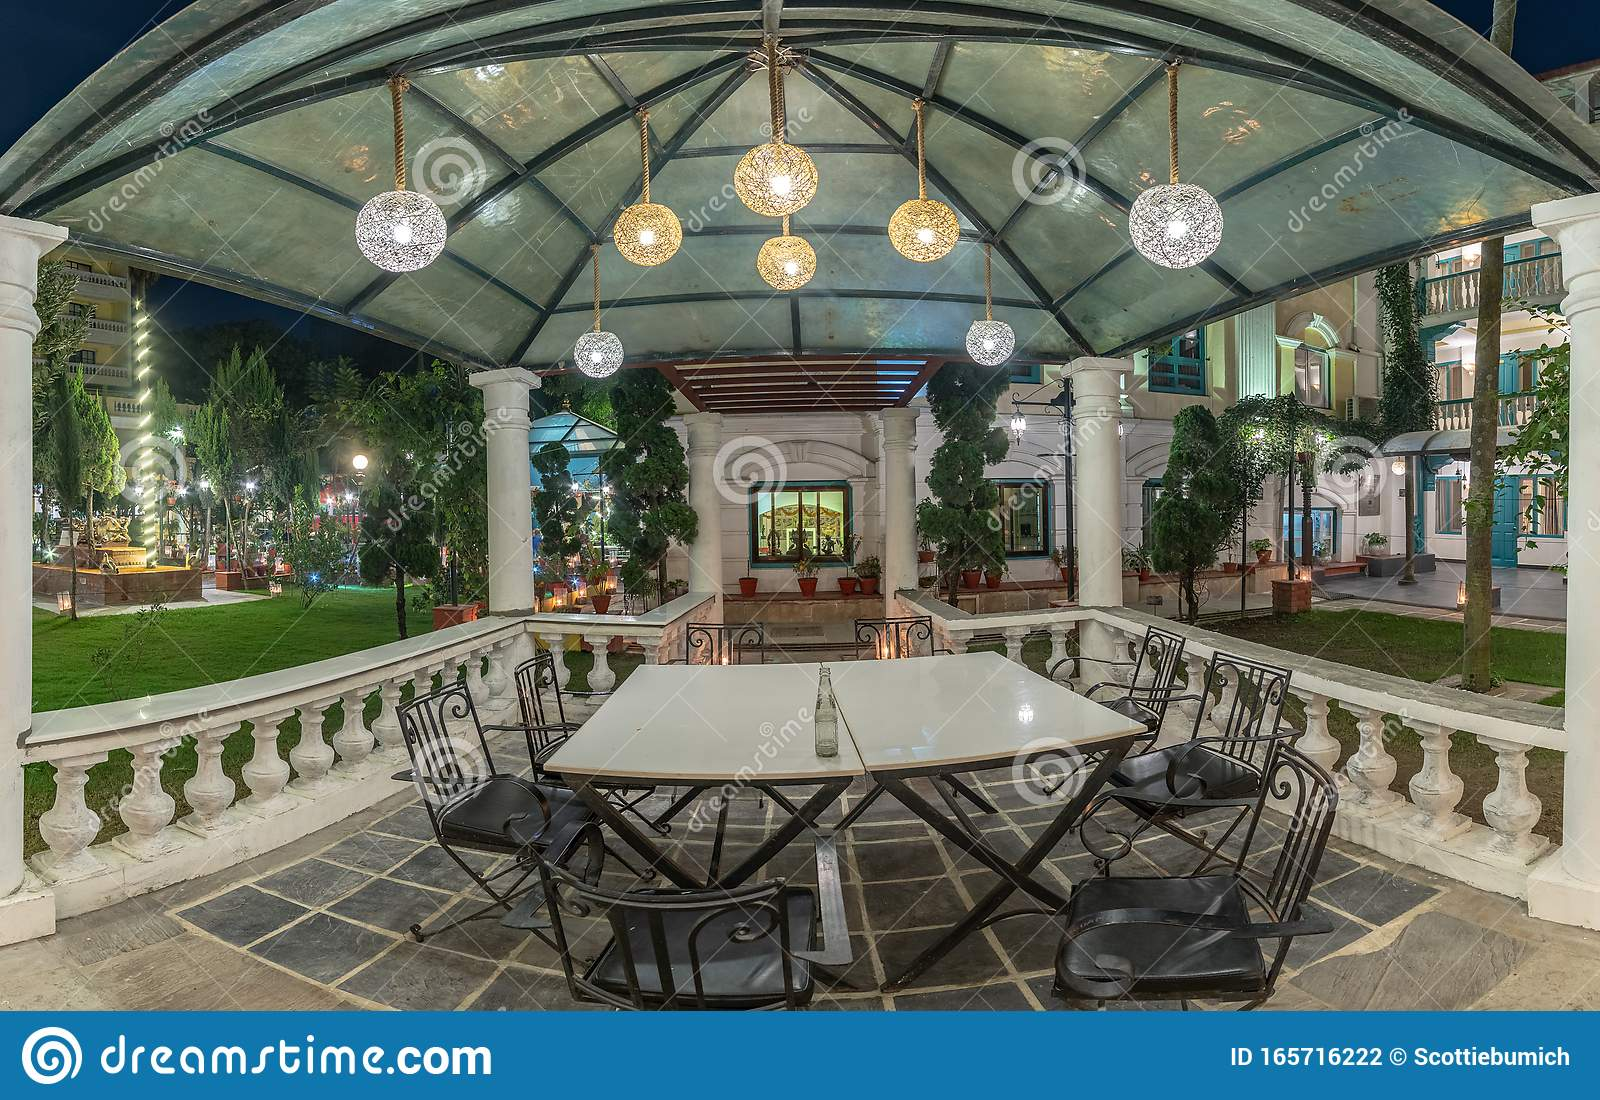 Outdoor Casual Dining Area With Table And Chairs Stock Photo Image Of Travel Cafe 165716222